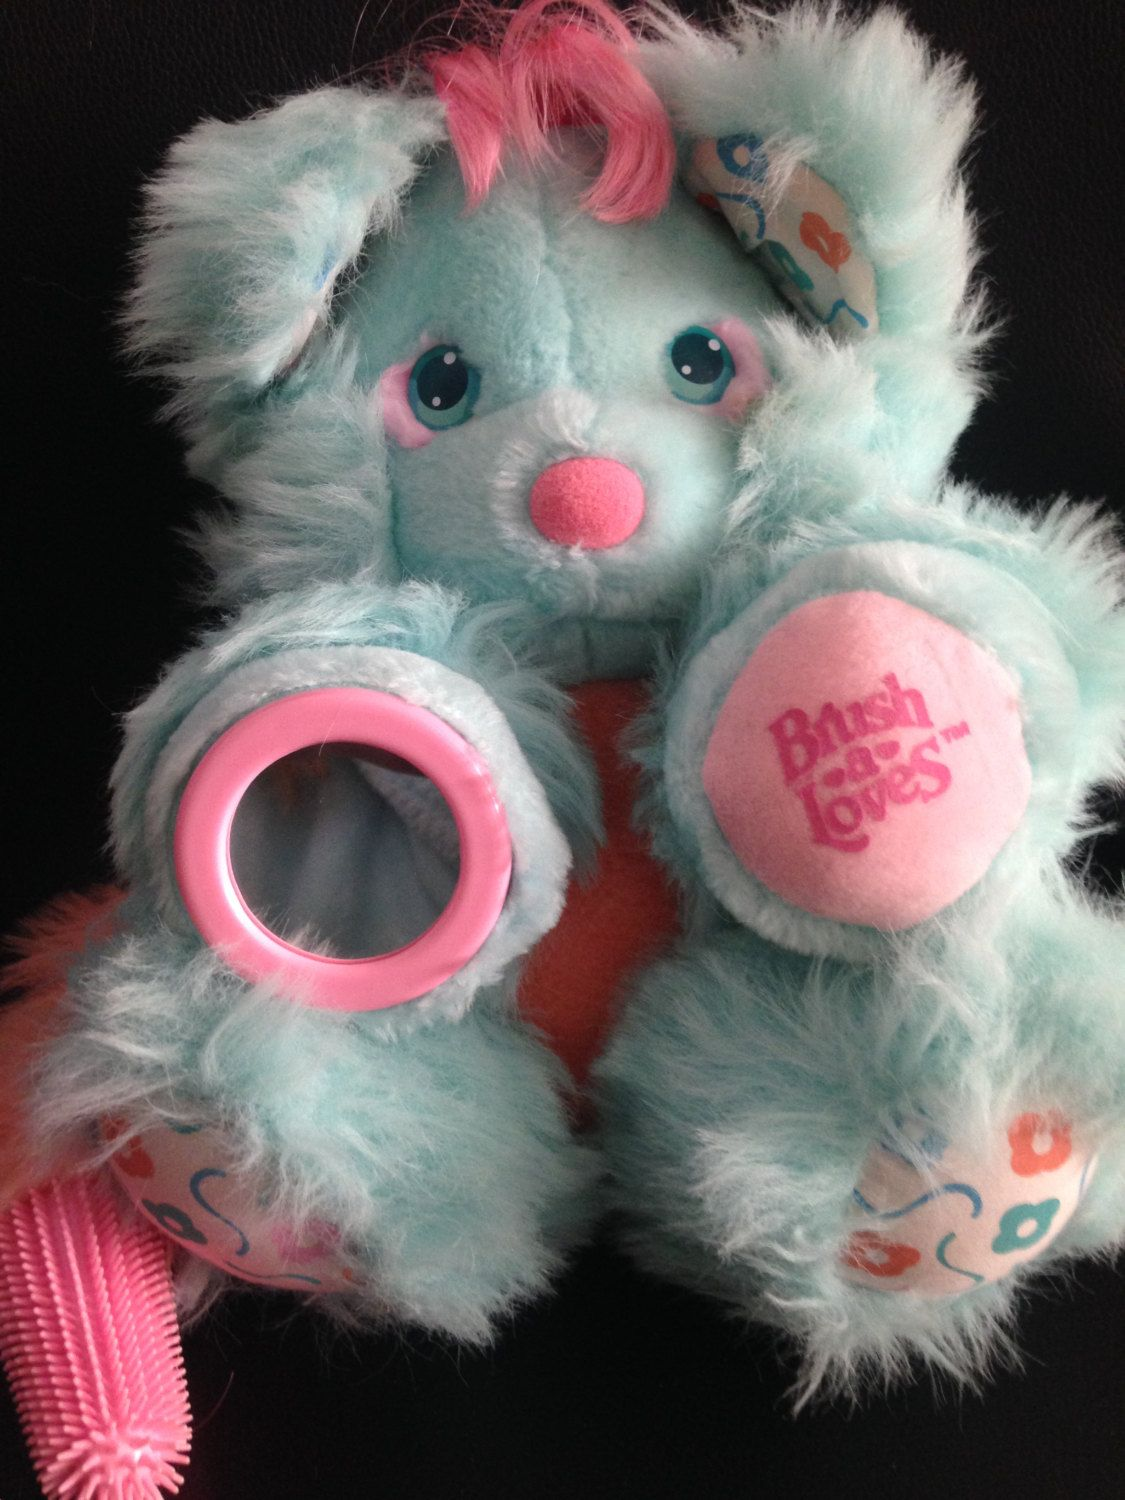 87b2cb307da SOLD RARE Vintage 80s Amtoy Brush A Loves Tutti Cutie Plush Stuffed Toy  Pink   Blue Teddy Bear Lovie 11